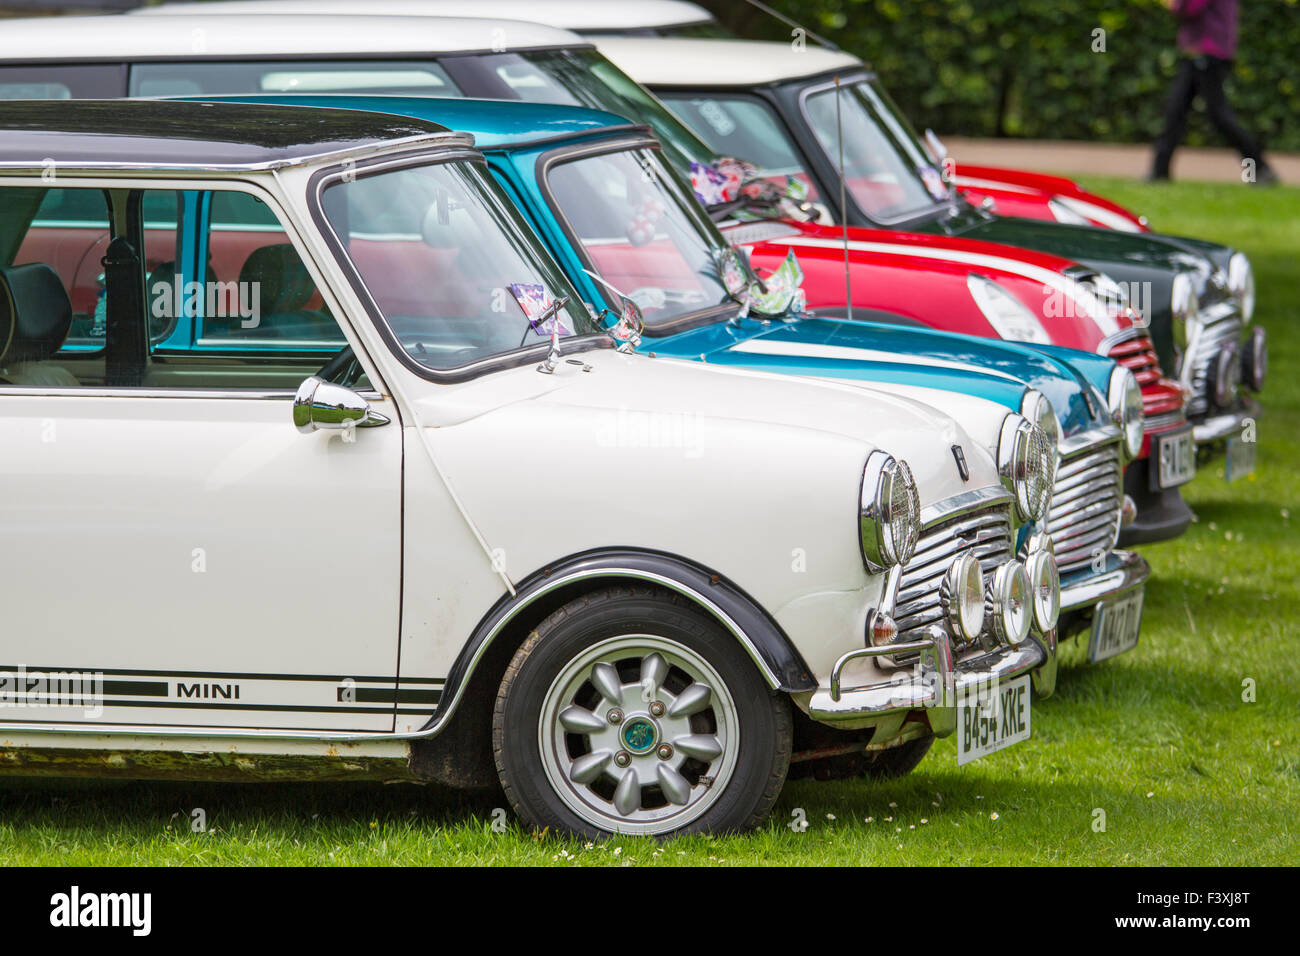 Morris Mini-Minors at a Mini rally in Northumberland, England - Stock Image